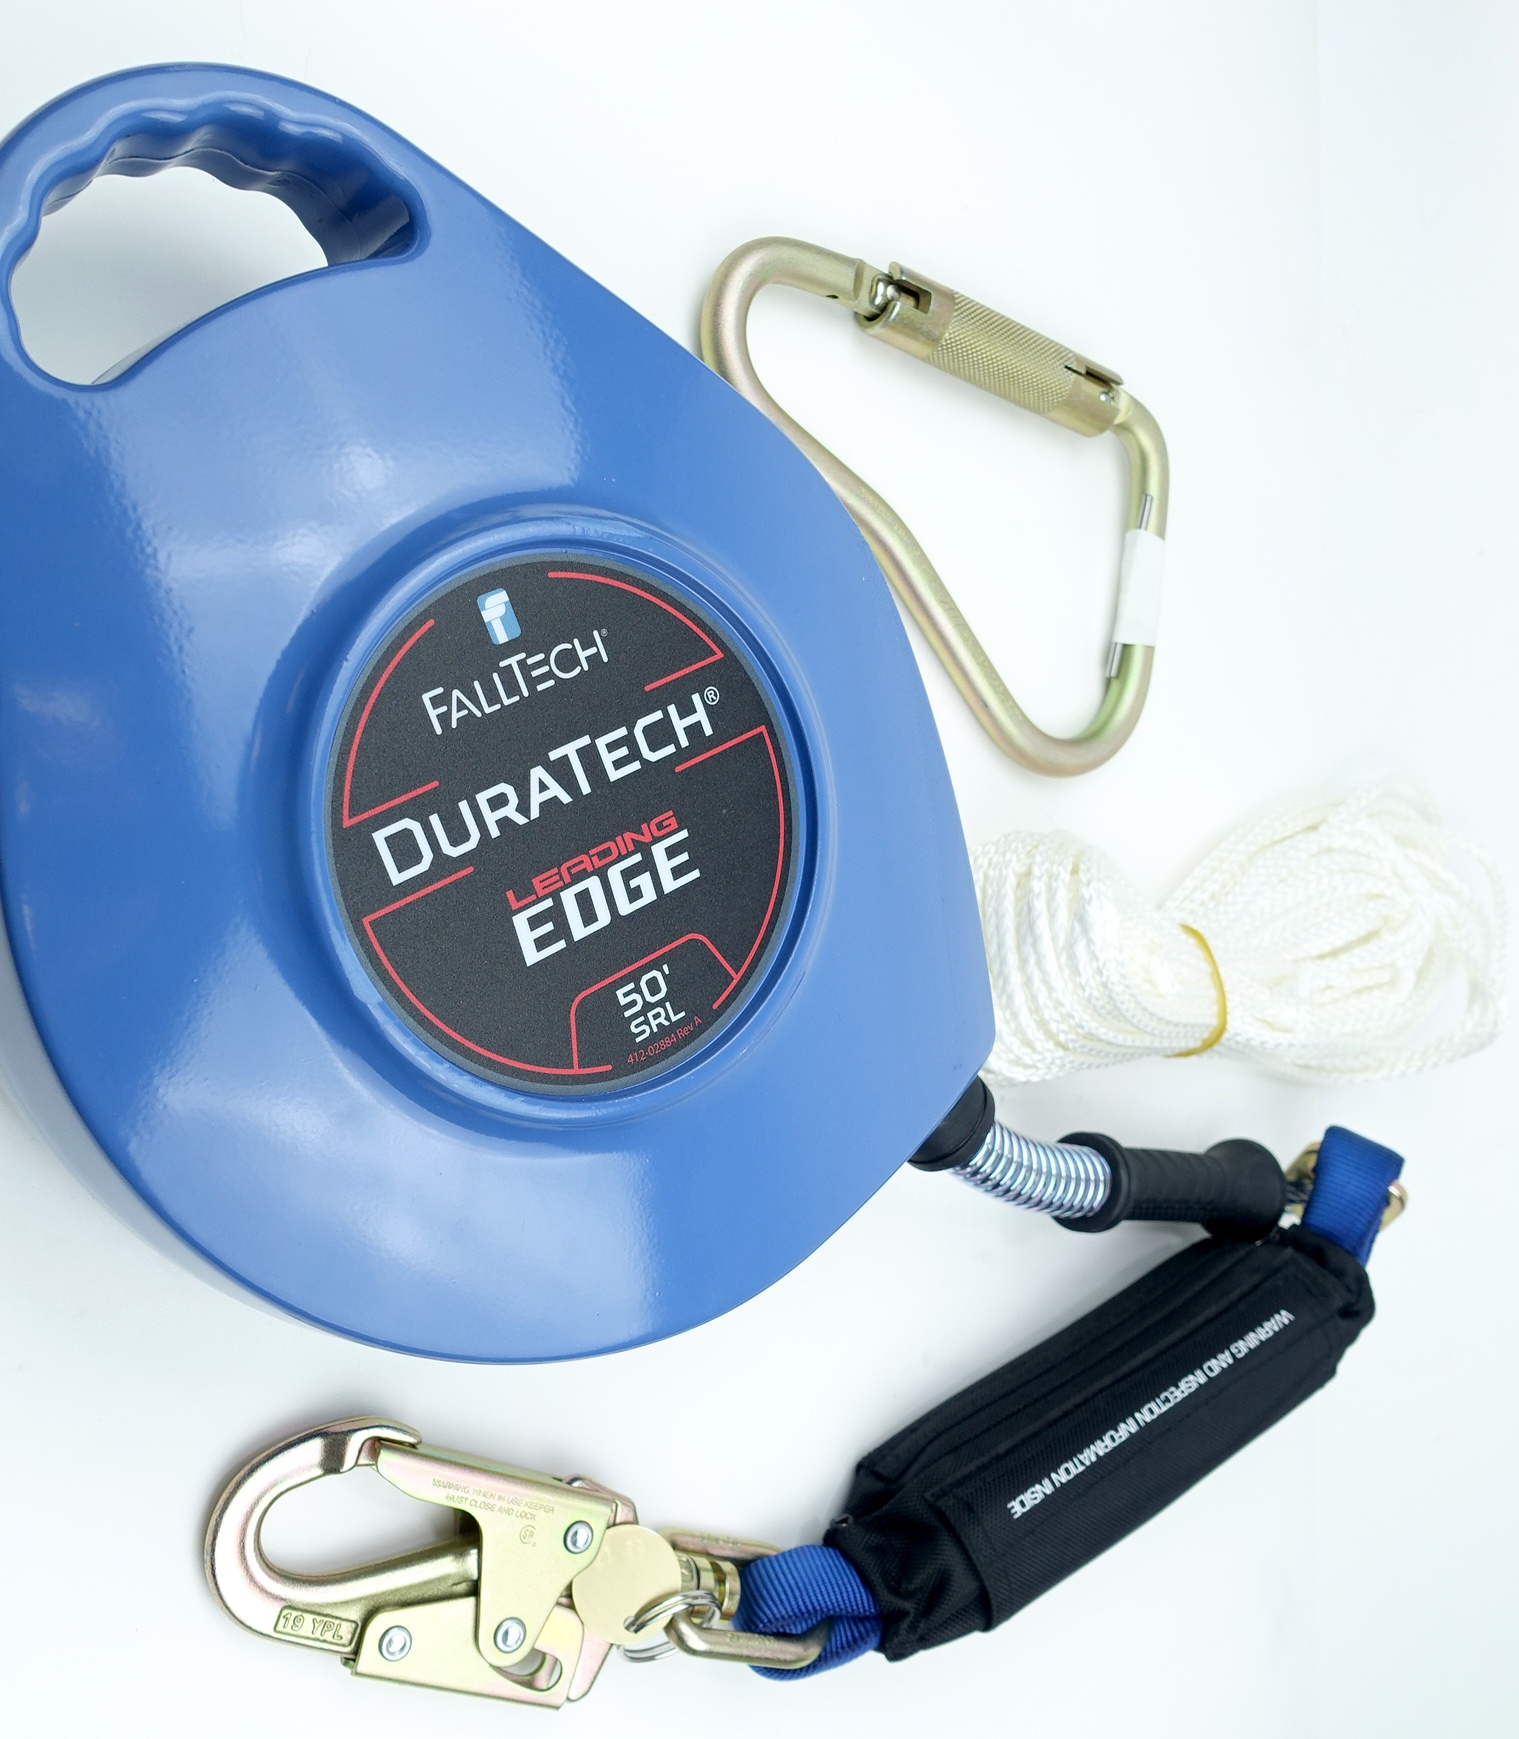 Falltech DuraTech Leading Edge Self-Retracting Lifeline - 50' Galvanized Cable - image 1